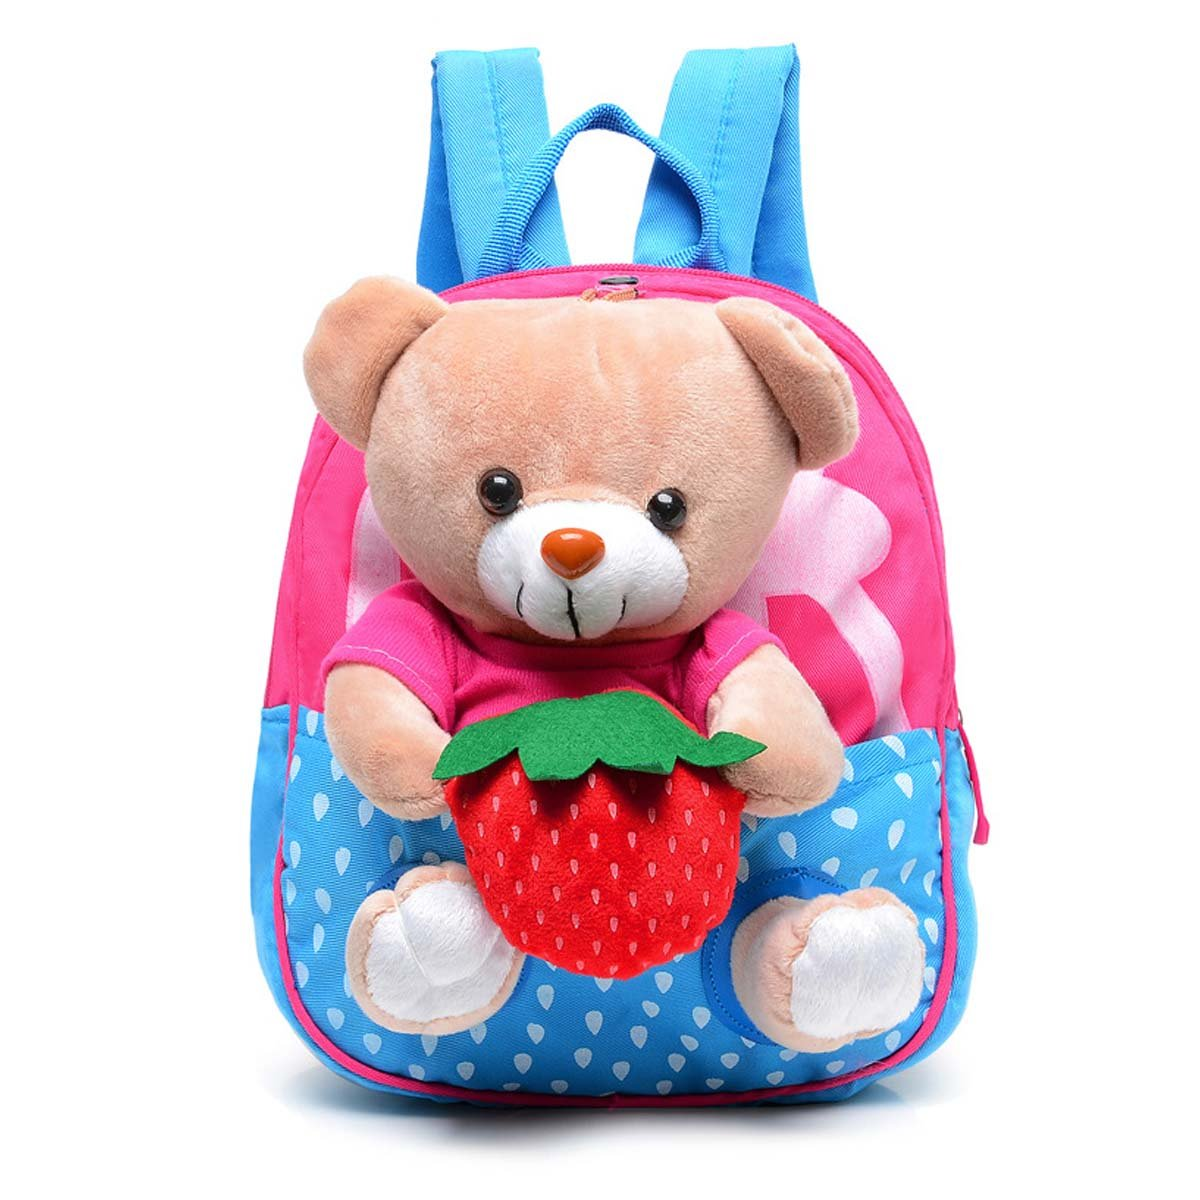 FYGOOD Canvas Baby Bag Backpack for Toddler Little Kids 1-3Years old with Plush Doll Bear Dark Pink 9.4x8.2x2.3'' by FYGOOD